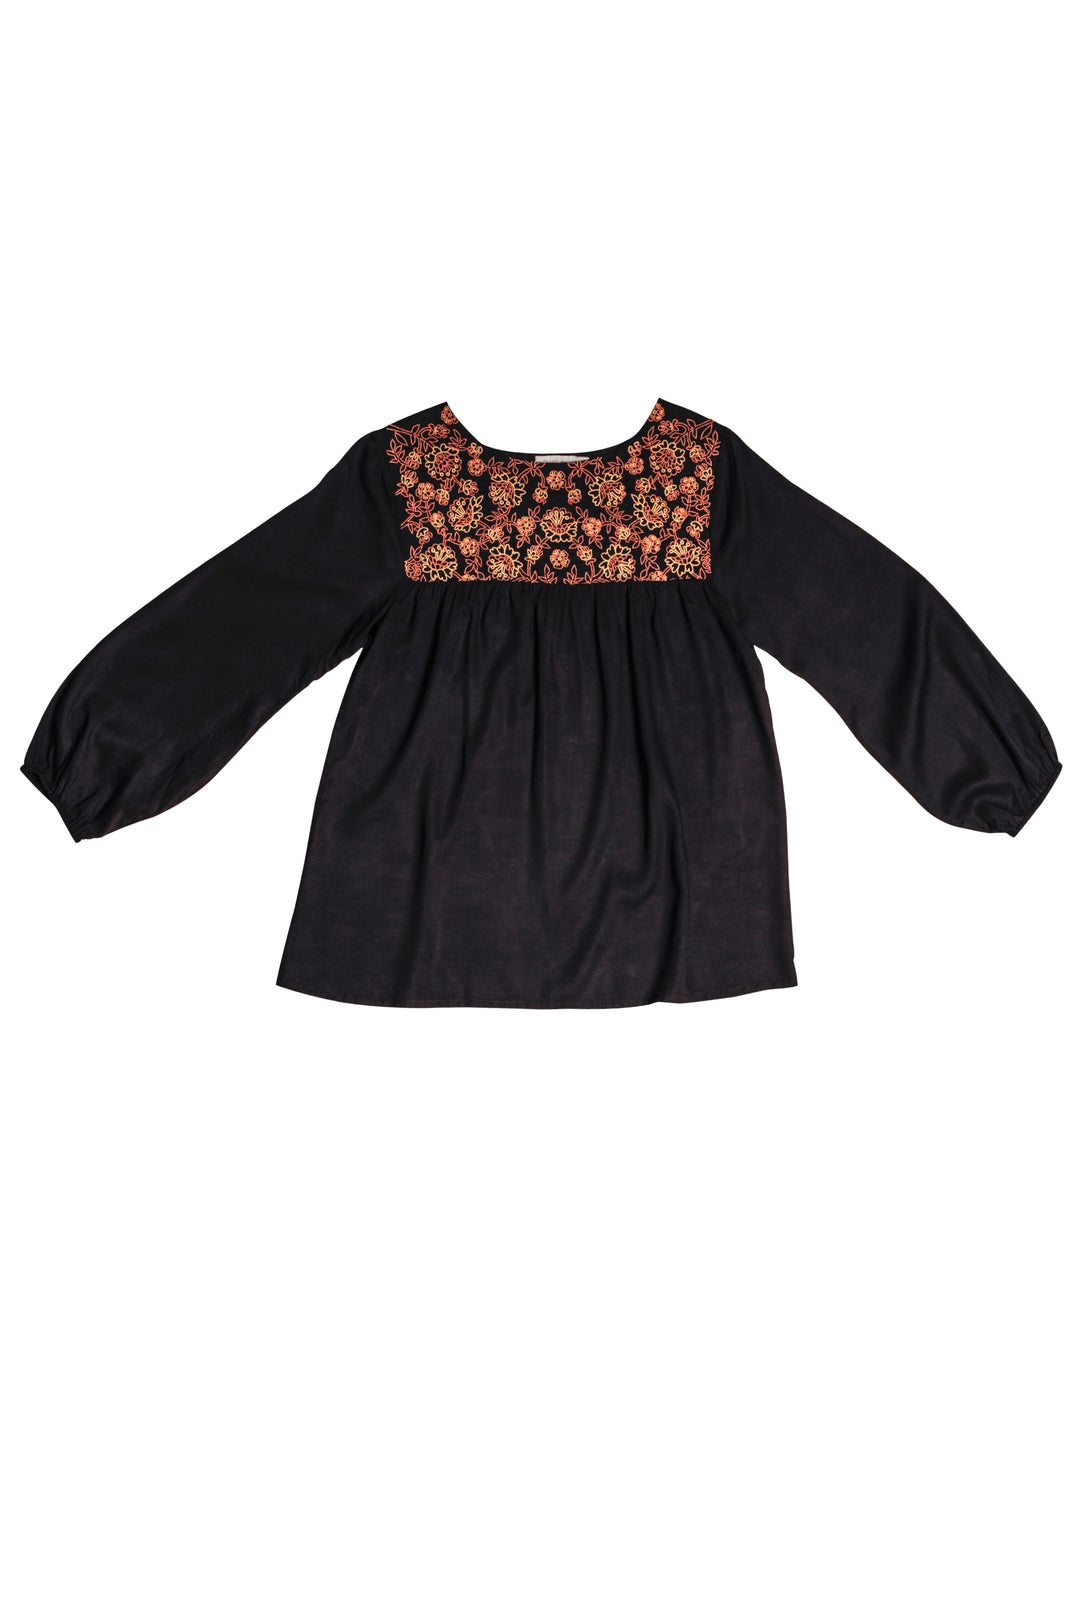 black embroidered artists smock blouse